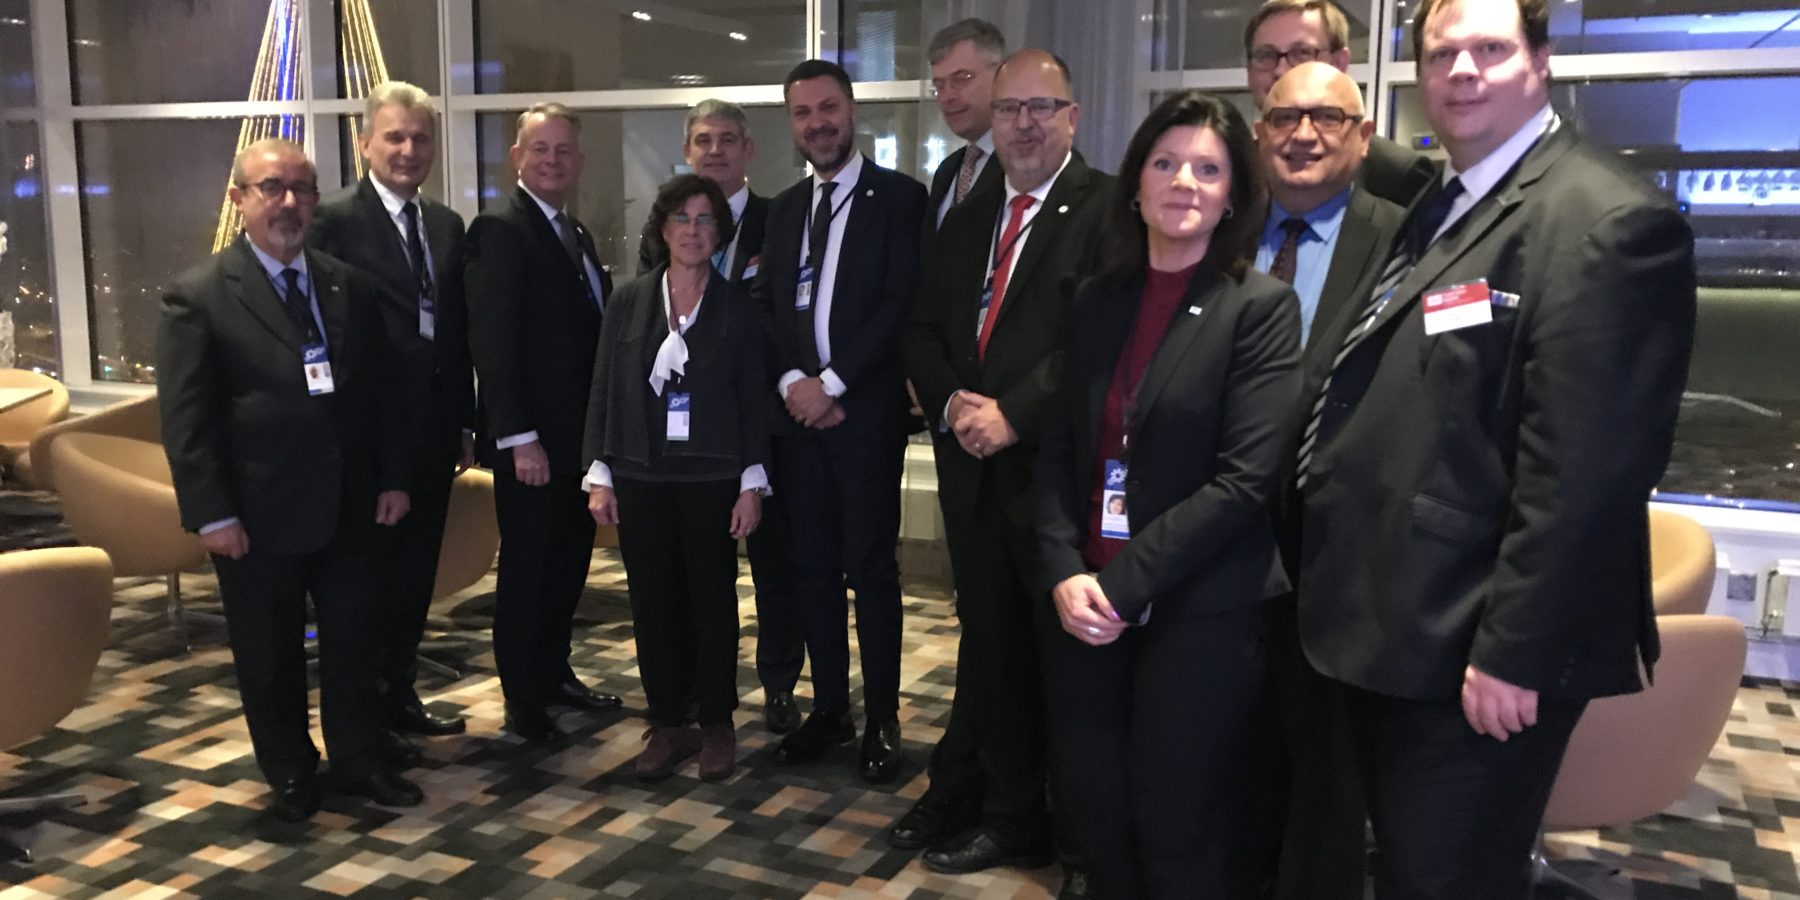 The trade union delegationto the extraordinary Tripartite Social Summit 16 November 2017. Martin Jefflén, Eurocadres furthest to the right.